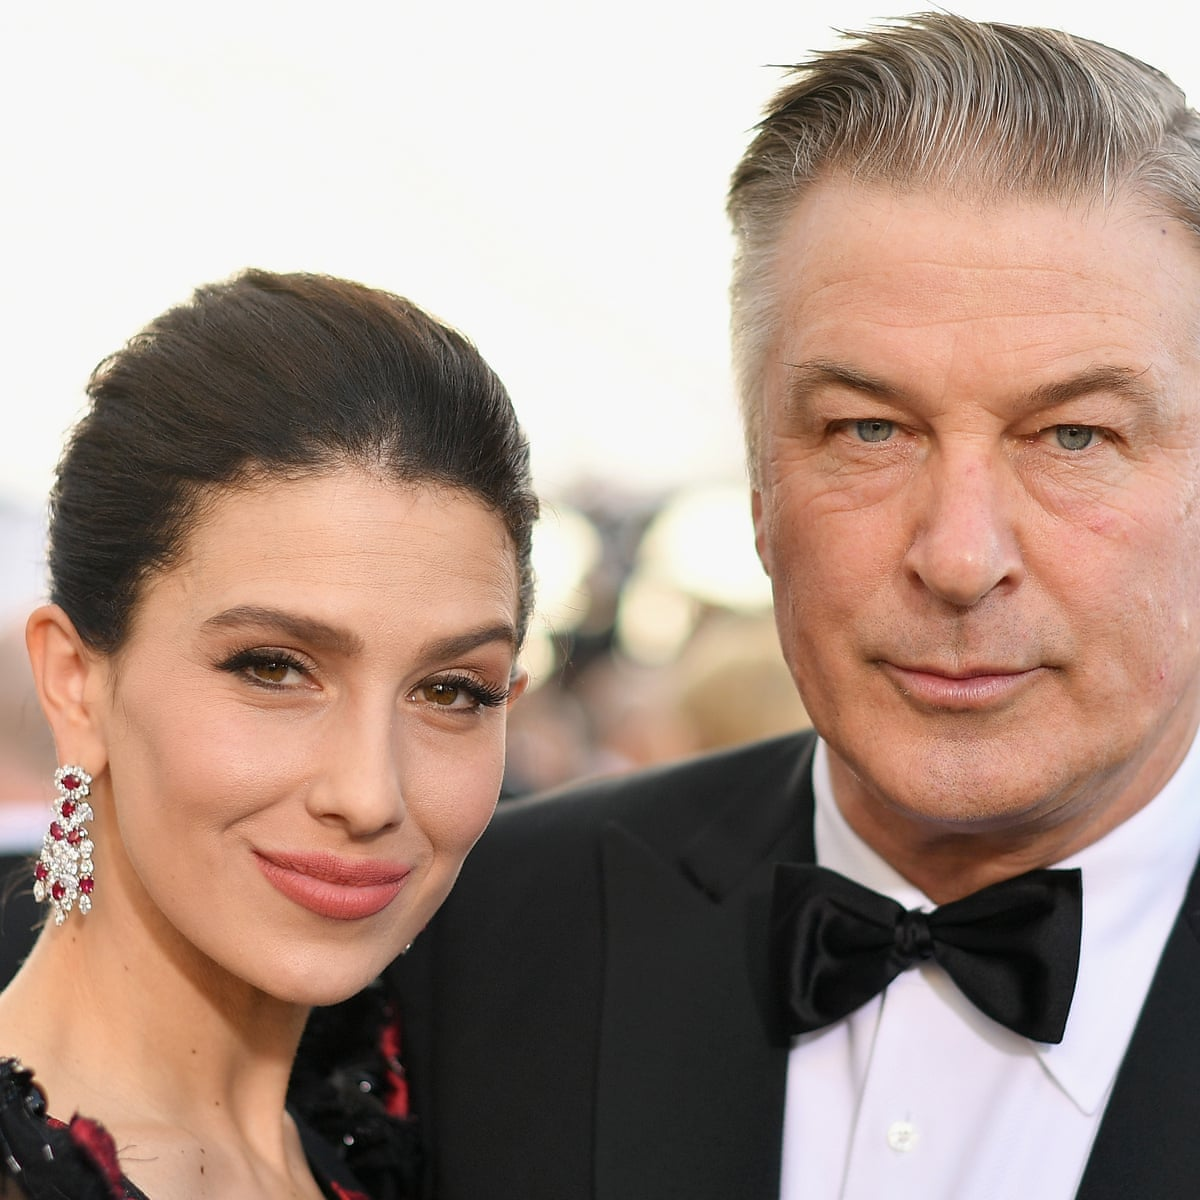 alec-and-hilaria-baldwin-reportedly-really-upset-about-the-controversy-regarding-her-spanish-heritage